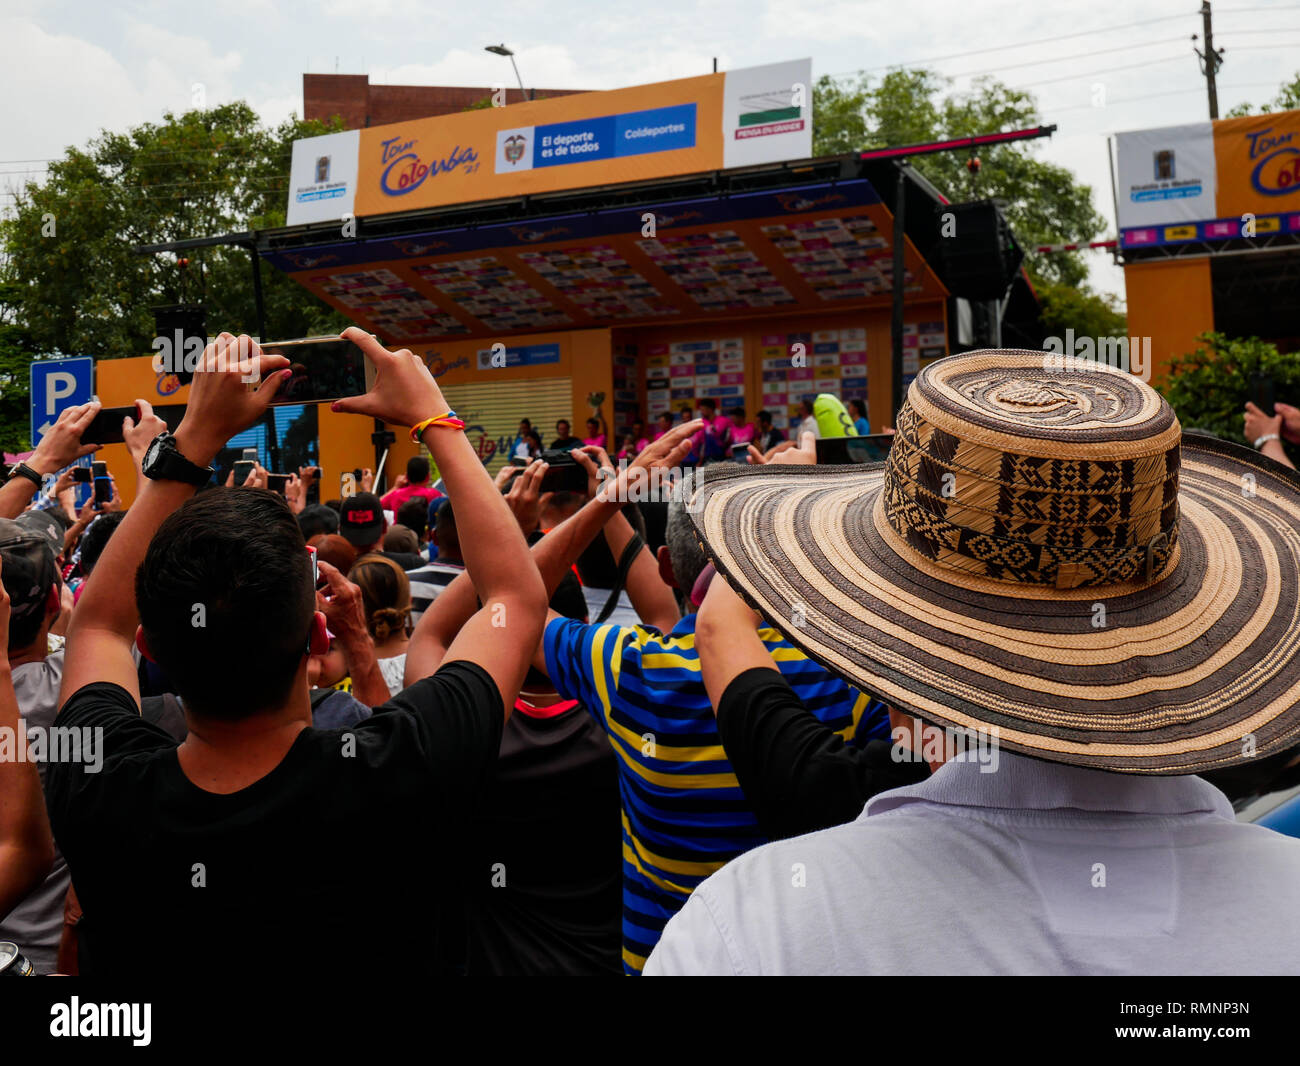 2b48bd2489f Crowd attending the award ceremony after the first stage of the tour  Colombia 2019 in medellin